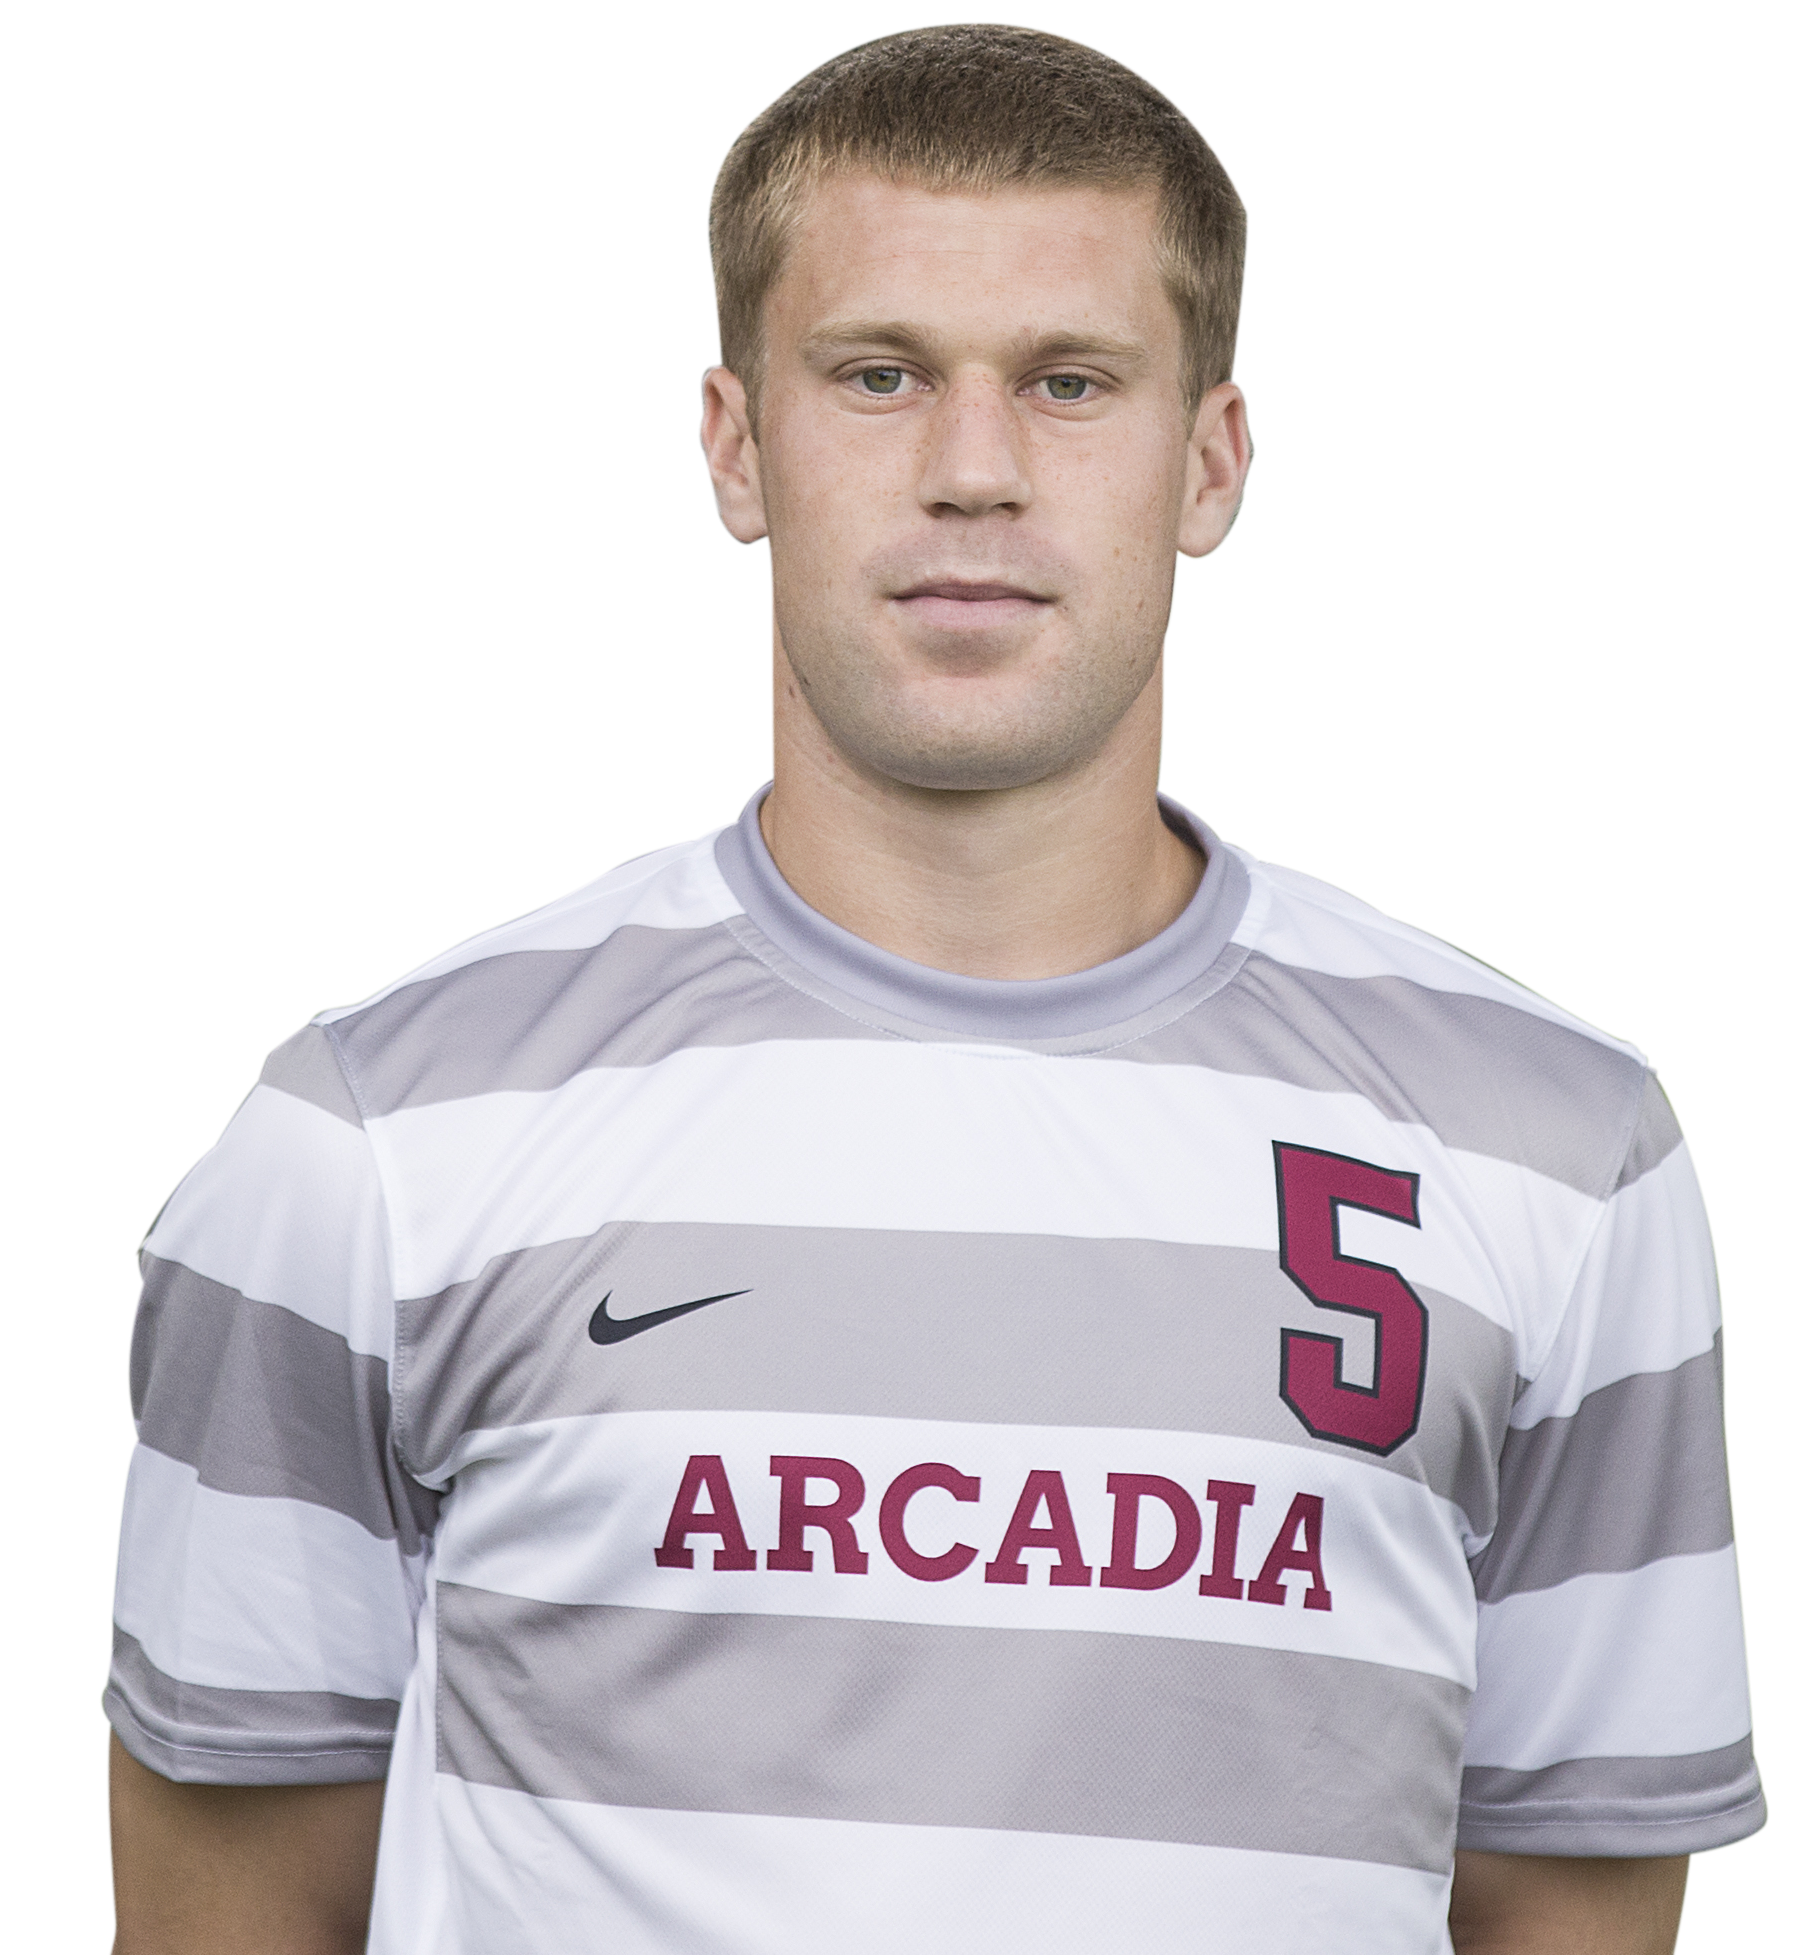 Male Arcadia soccer player.